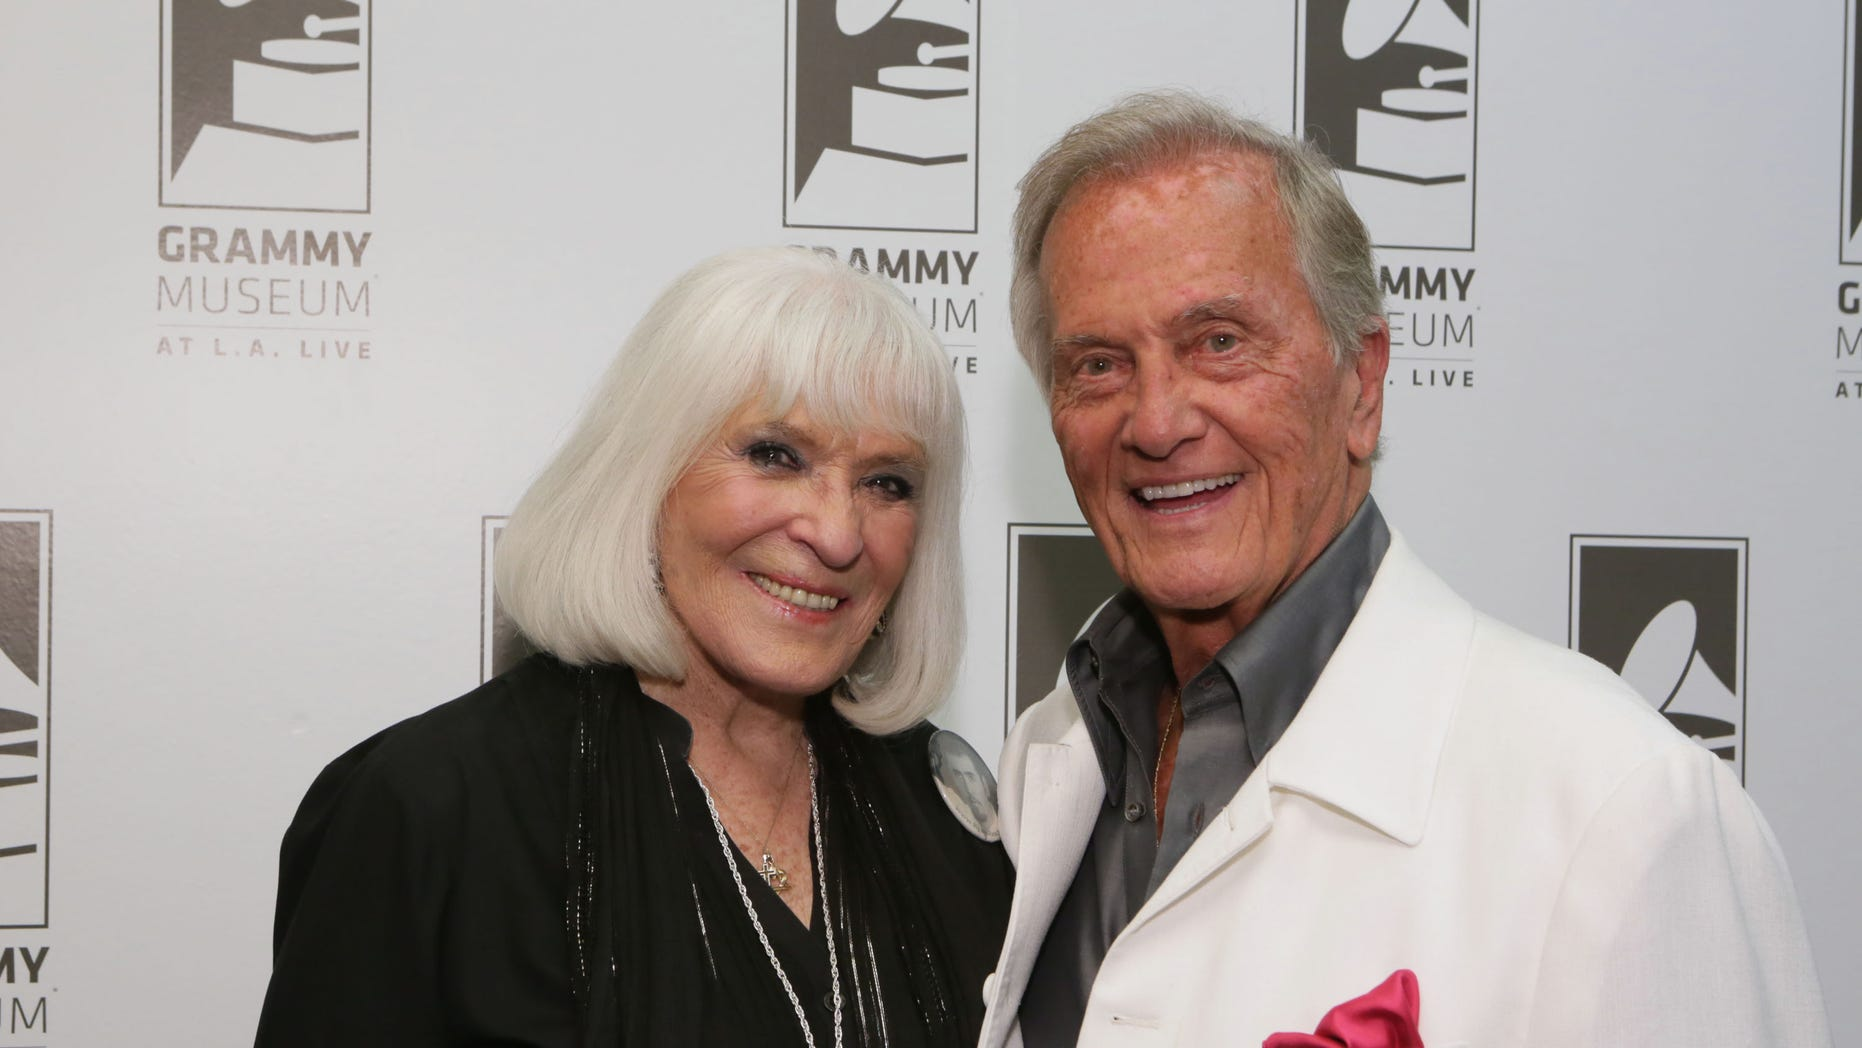 Shirley Boone, married to the famous singer and actor Pat Boone, died on Friday at the age of 84.